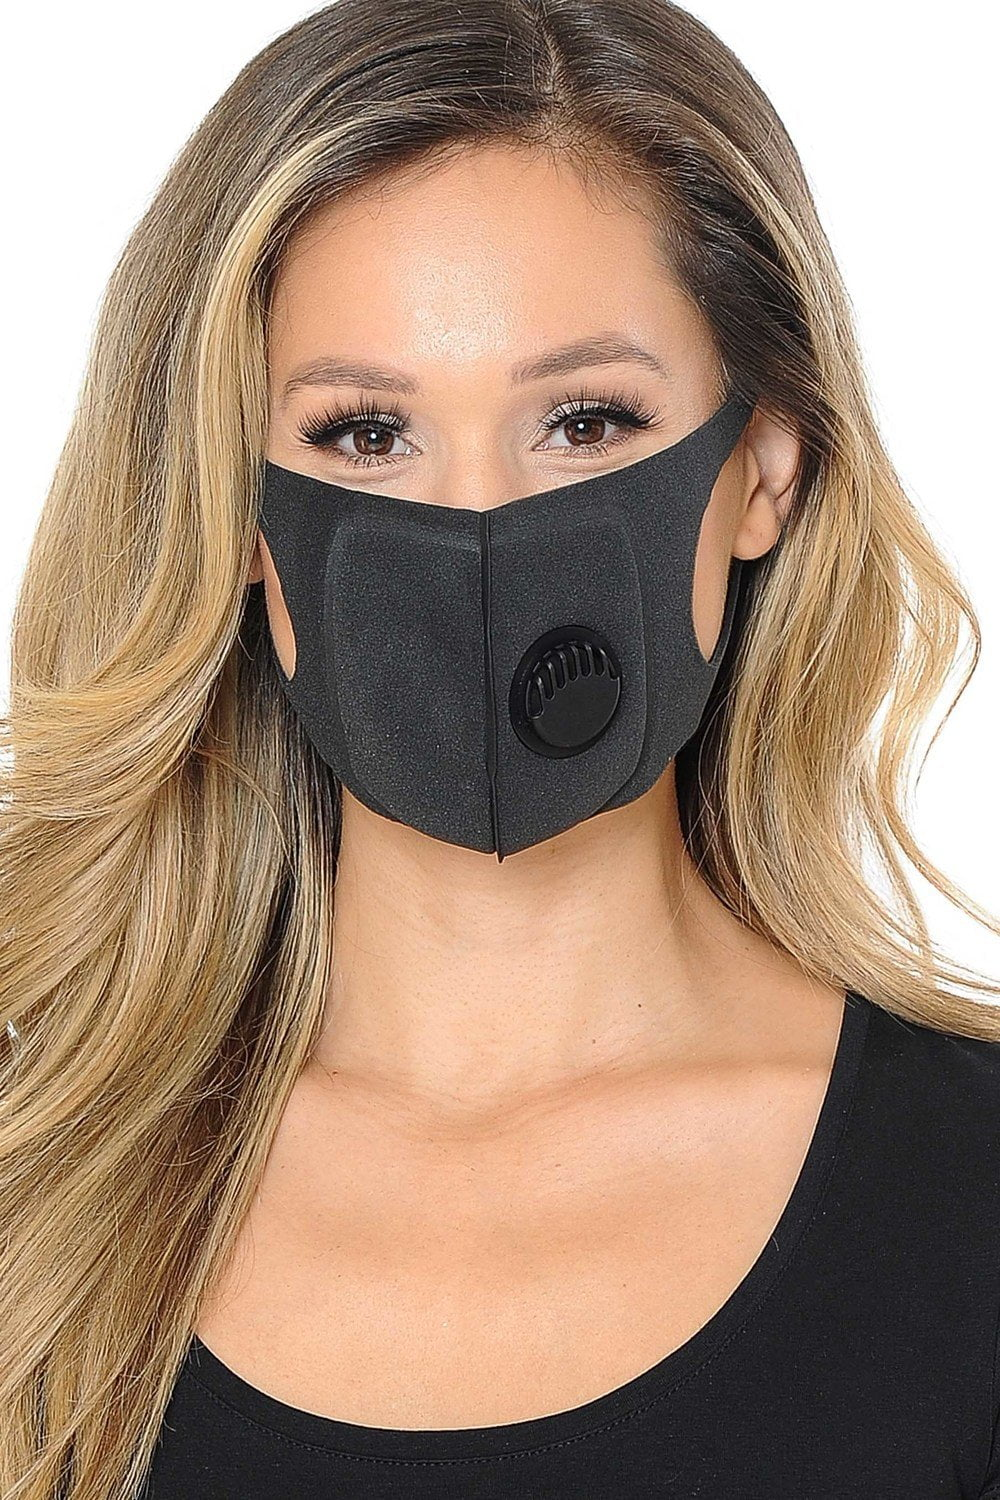 Fiumara Apparel Comfort Sponge Face Mask with Air Valve - 5 Pack